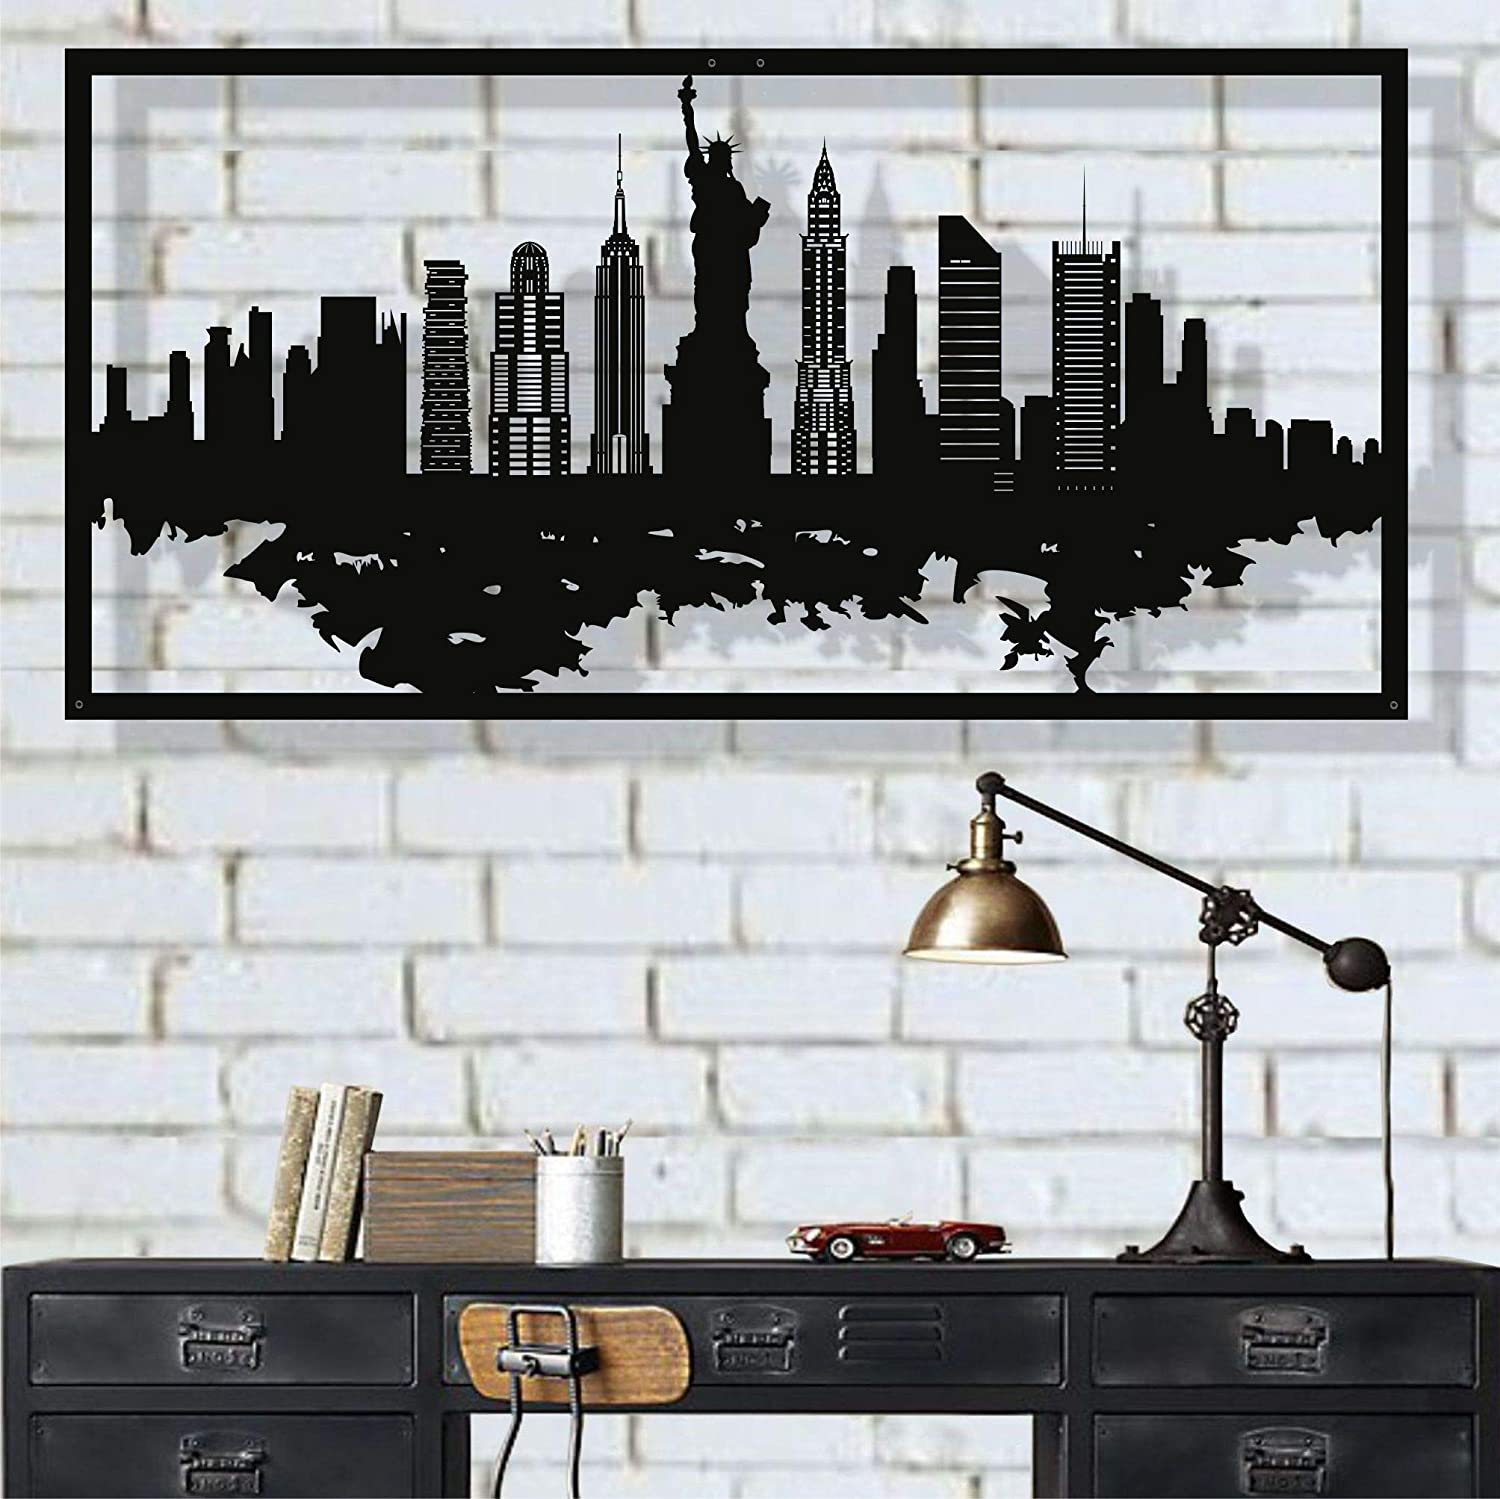 Metal Wall Art, New York Skyline City Silhouette, Metal Wall Decor, Home Office Decor, Living Room Decoration, Housewarming Gift (46